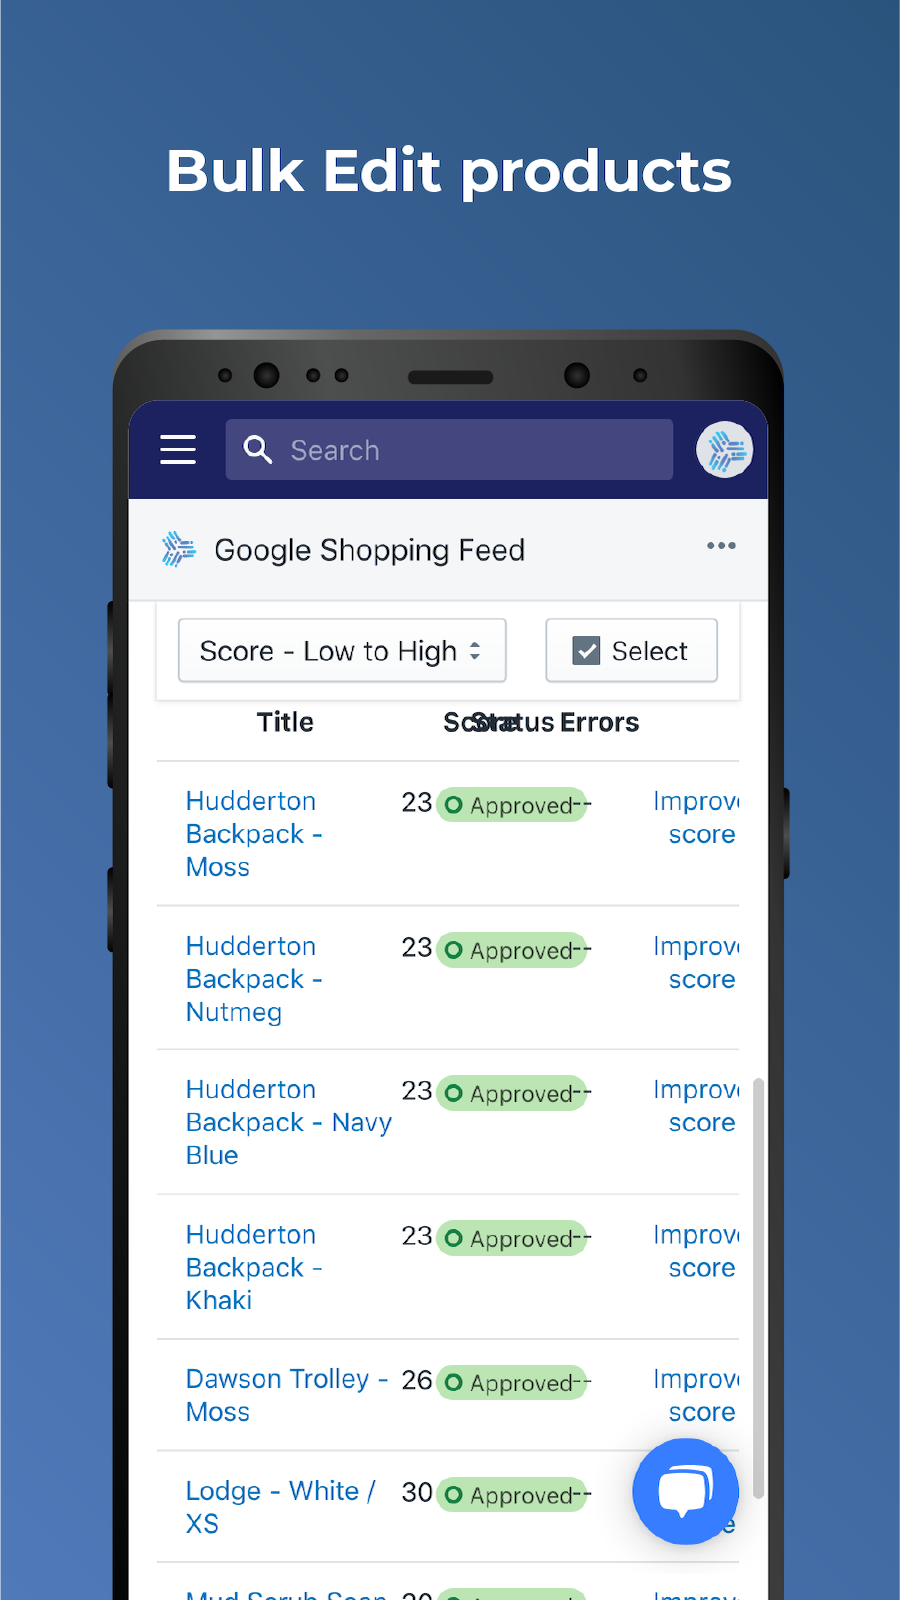 Bulk edit products easily in Google Shopping Feed